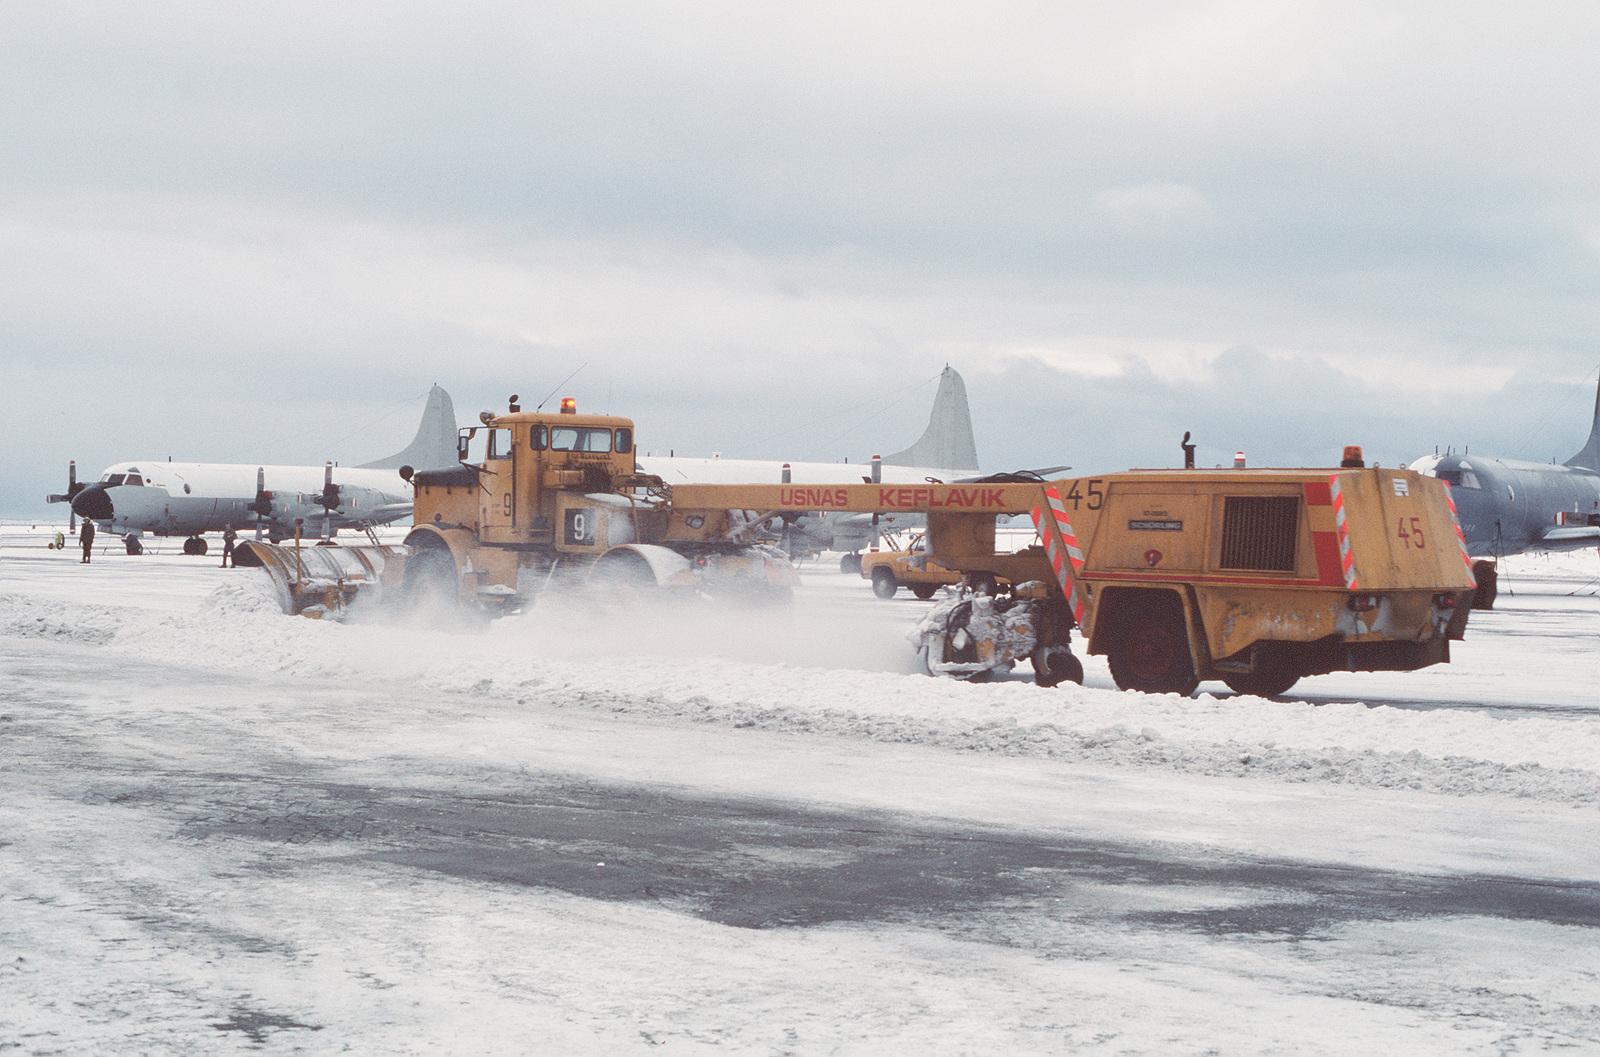 Heavy equipment removes snow from the flight line in front of a row of P-3 Orion aircraft